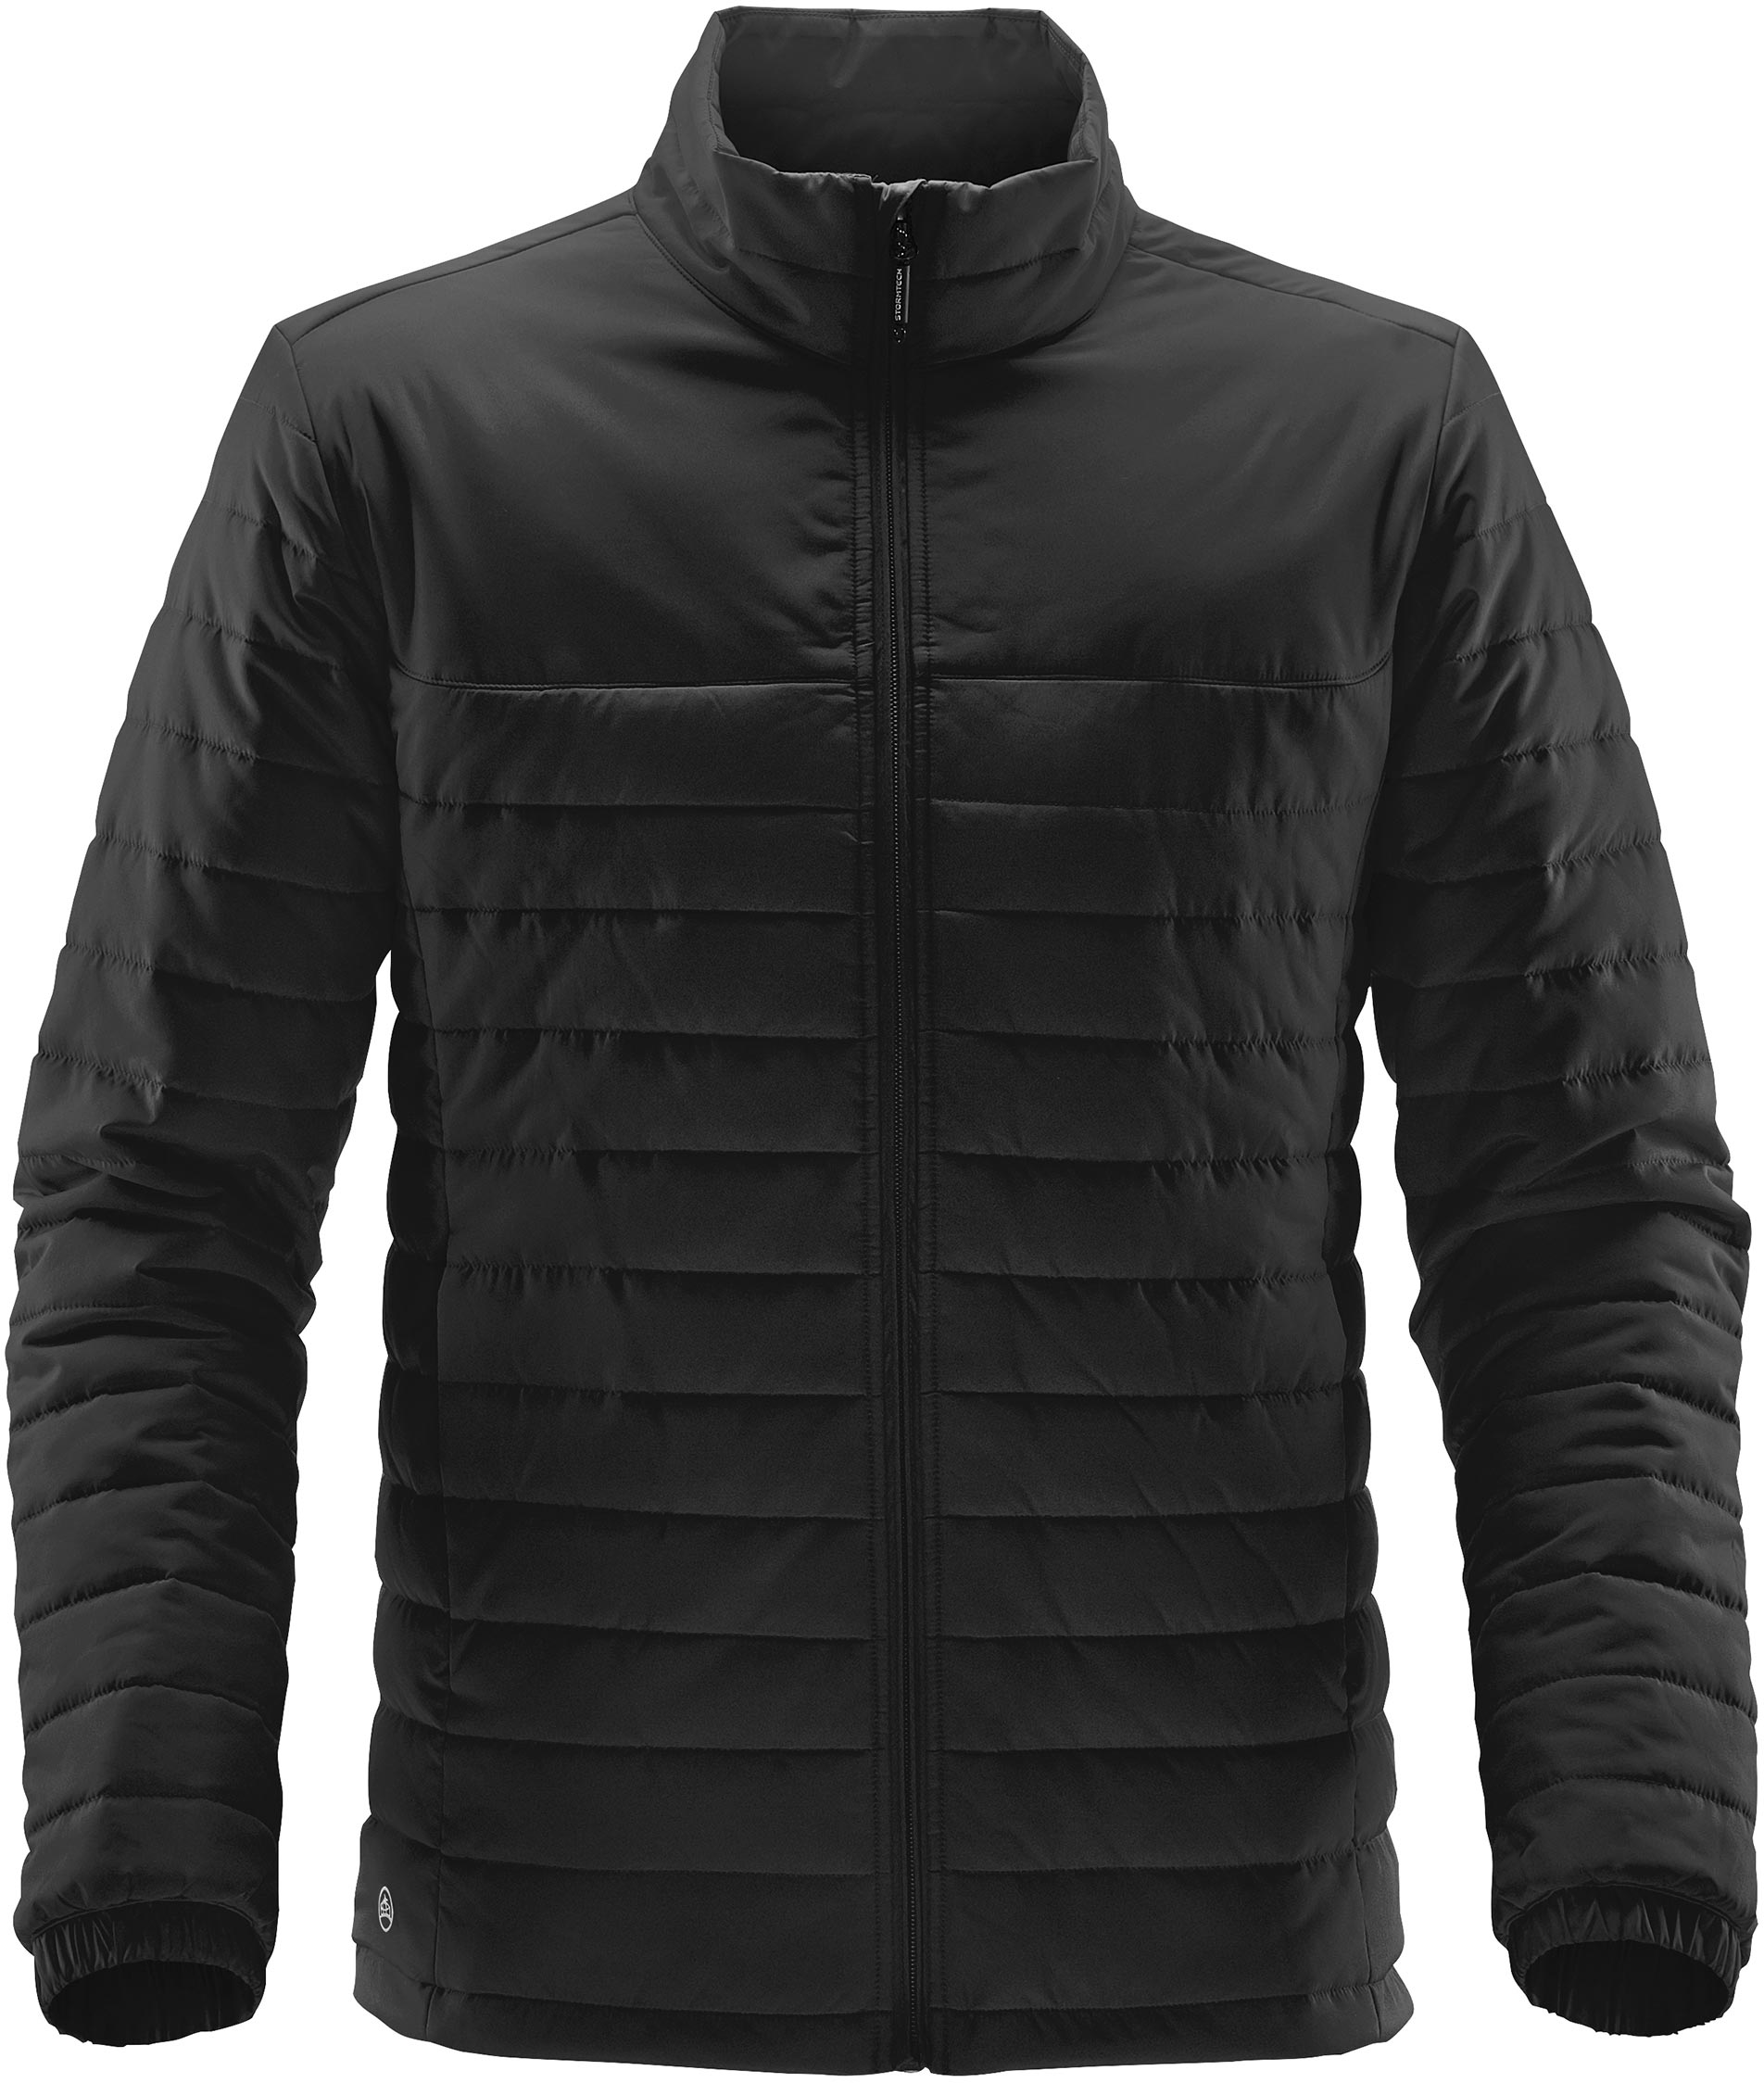 Stormtech QX-1 - Men's Nautilus Quilted Jacket